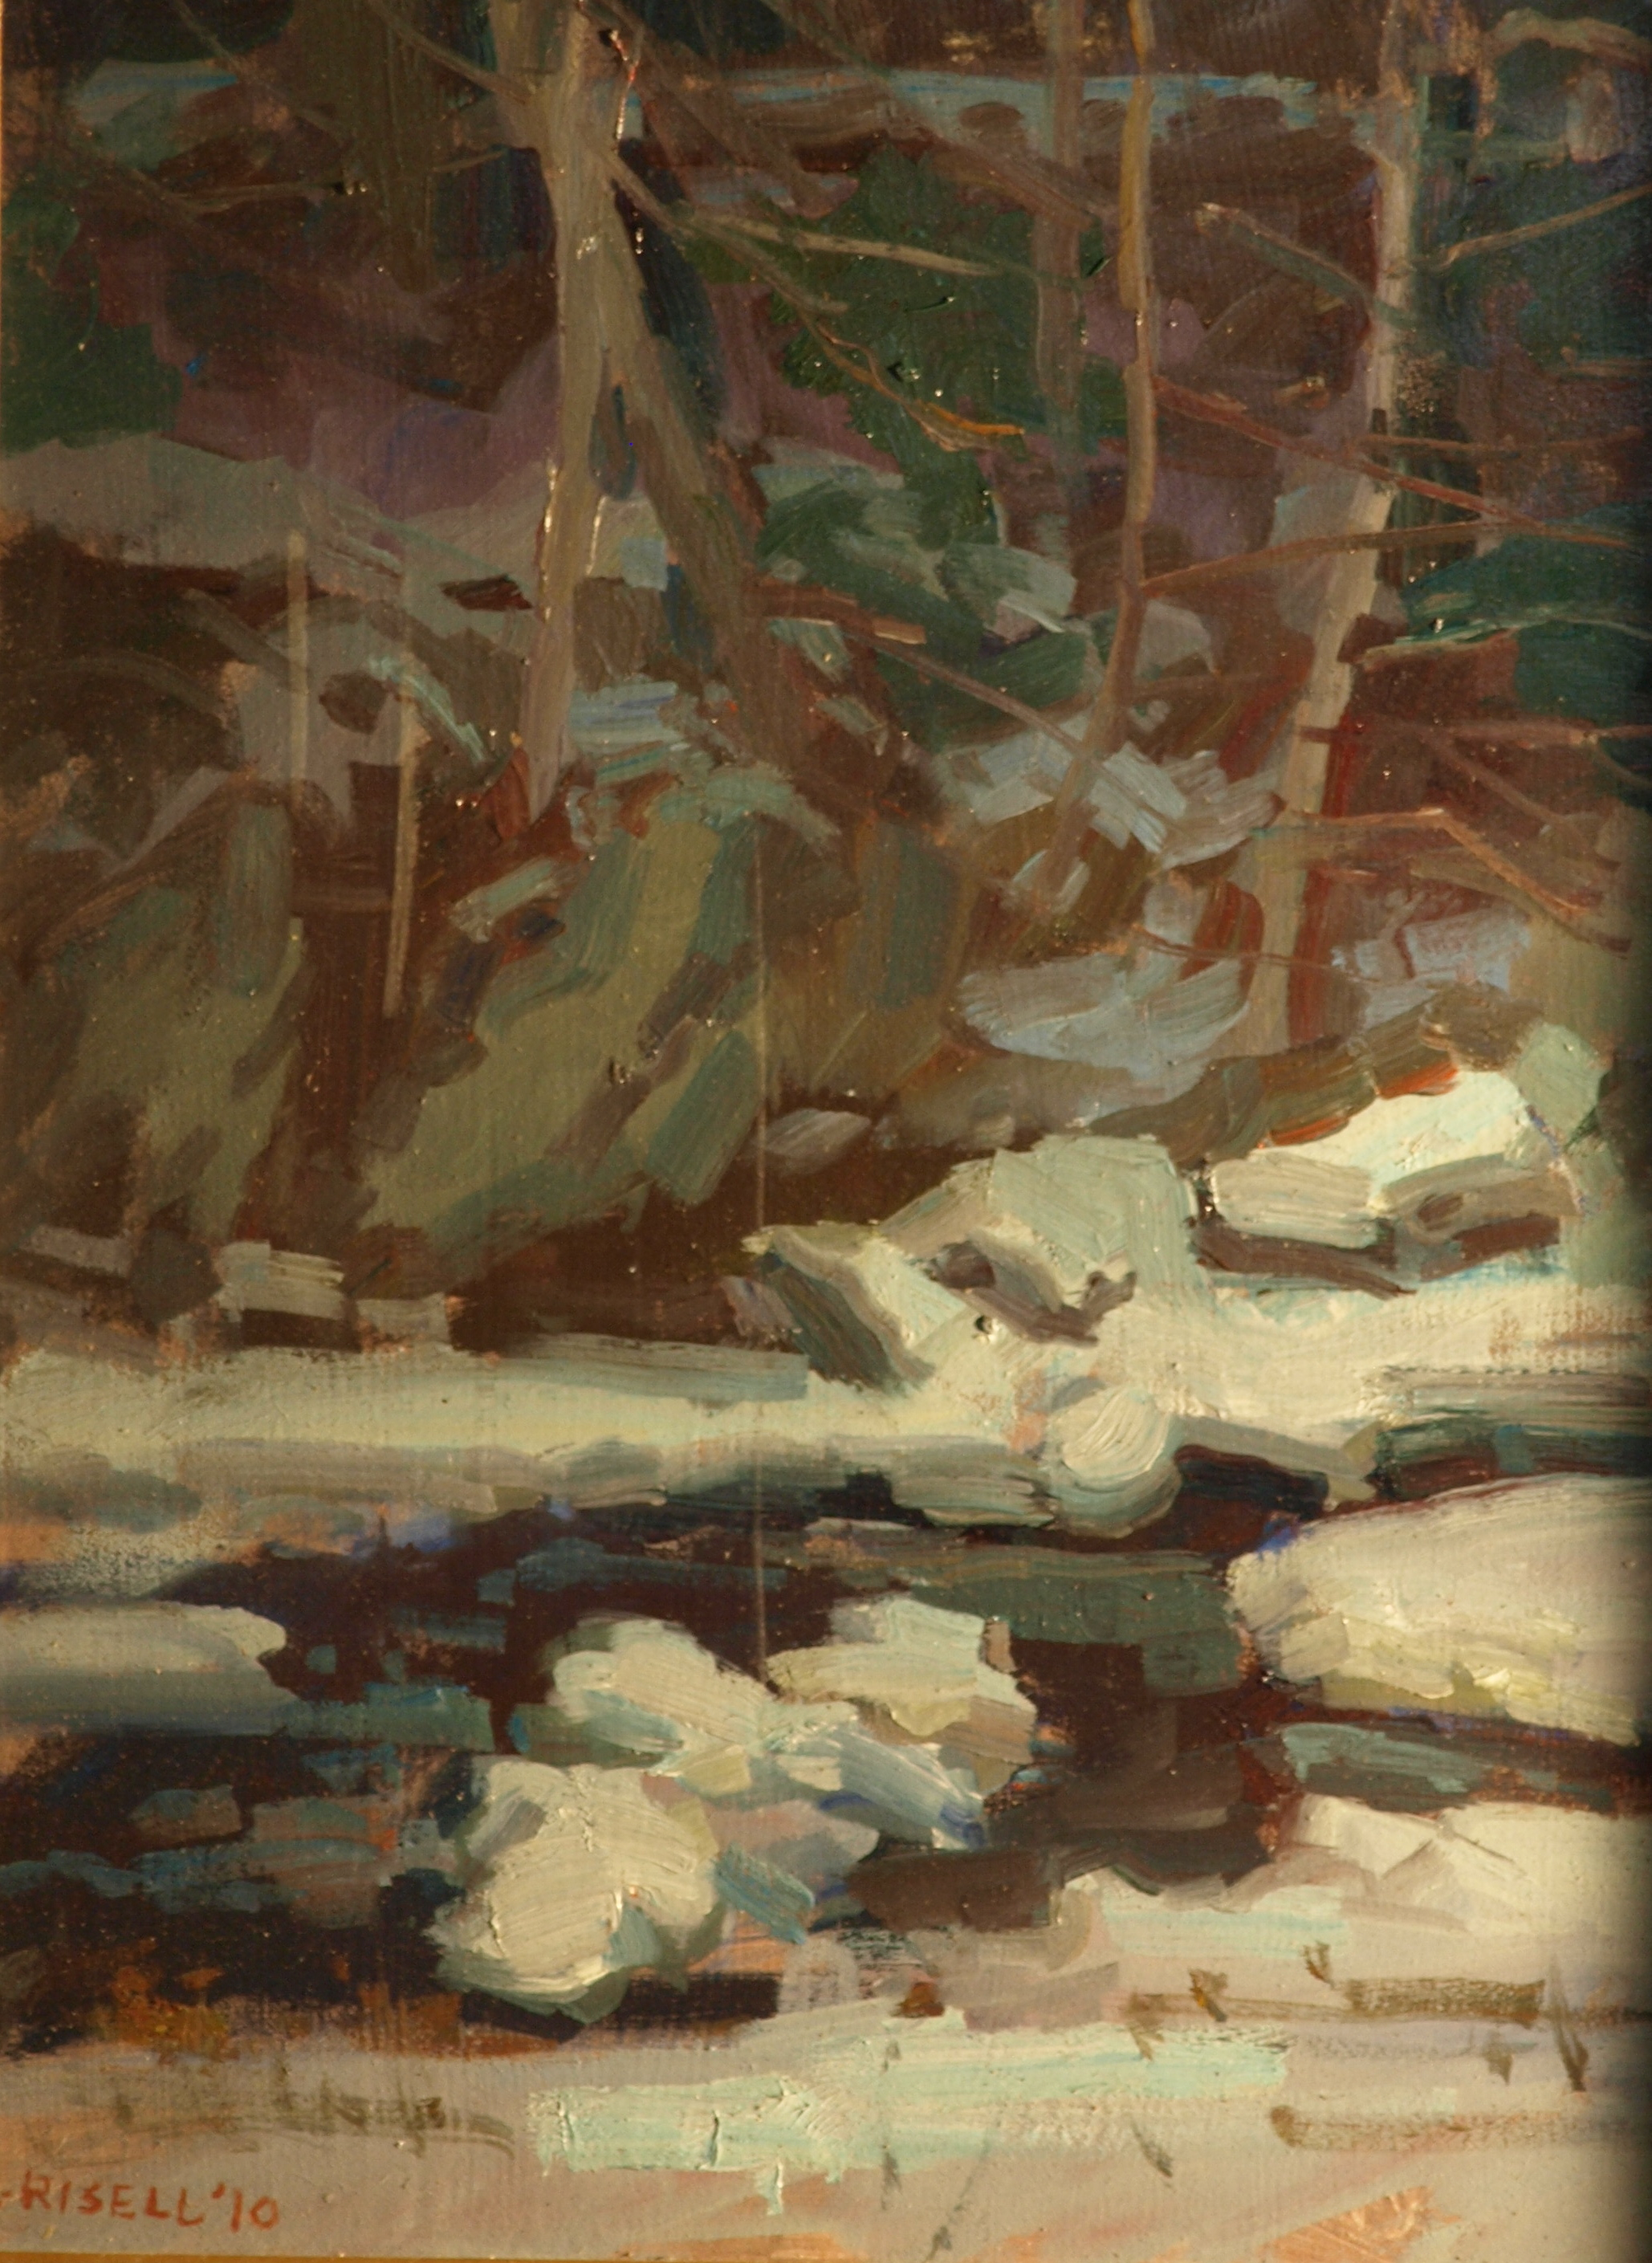 Winter Patterns, Oil on Linen on Panel, 16 x 12 Inches, by Susan Grisell, $300